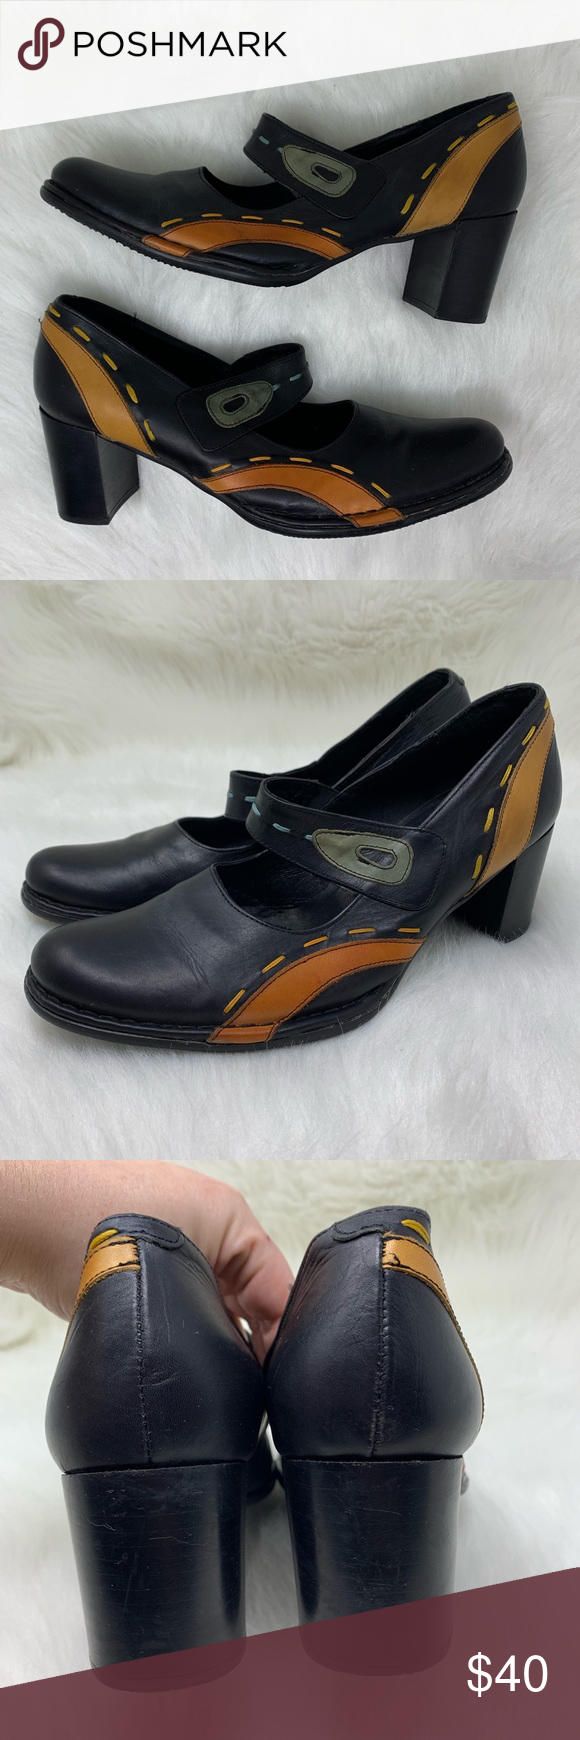 Pikolinos Black Leather Mary Jane Pump Heel 41 Pikolinos Women S